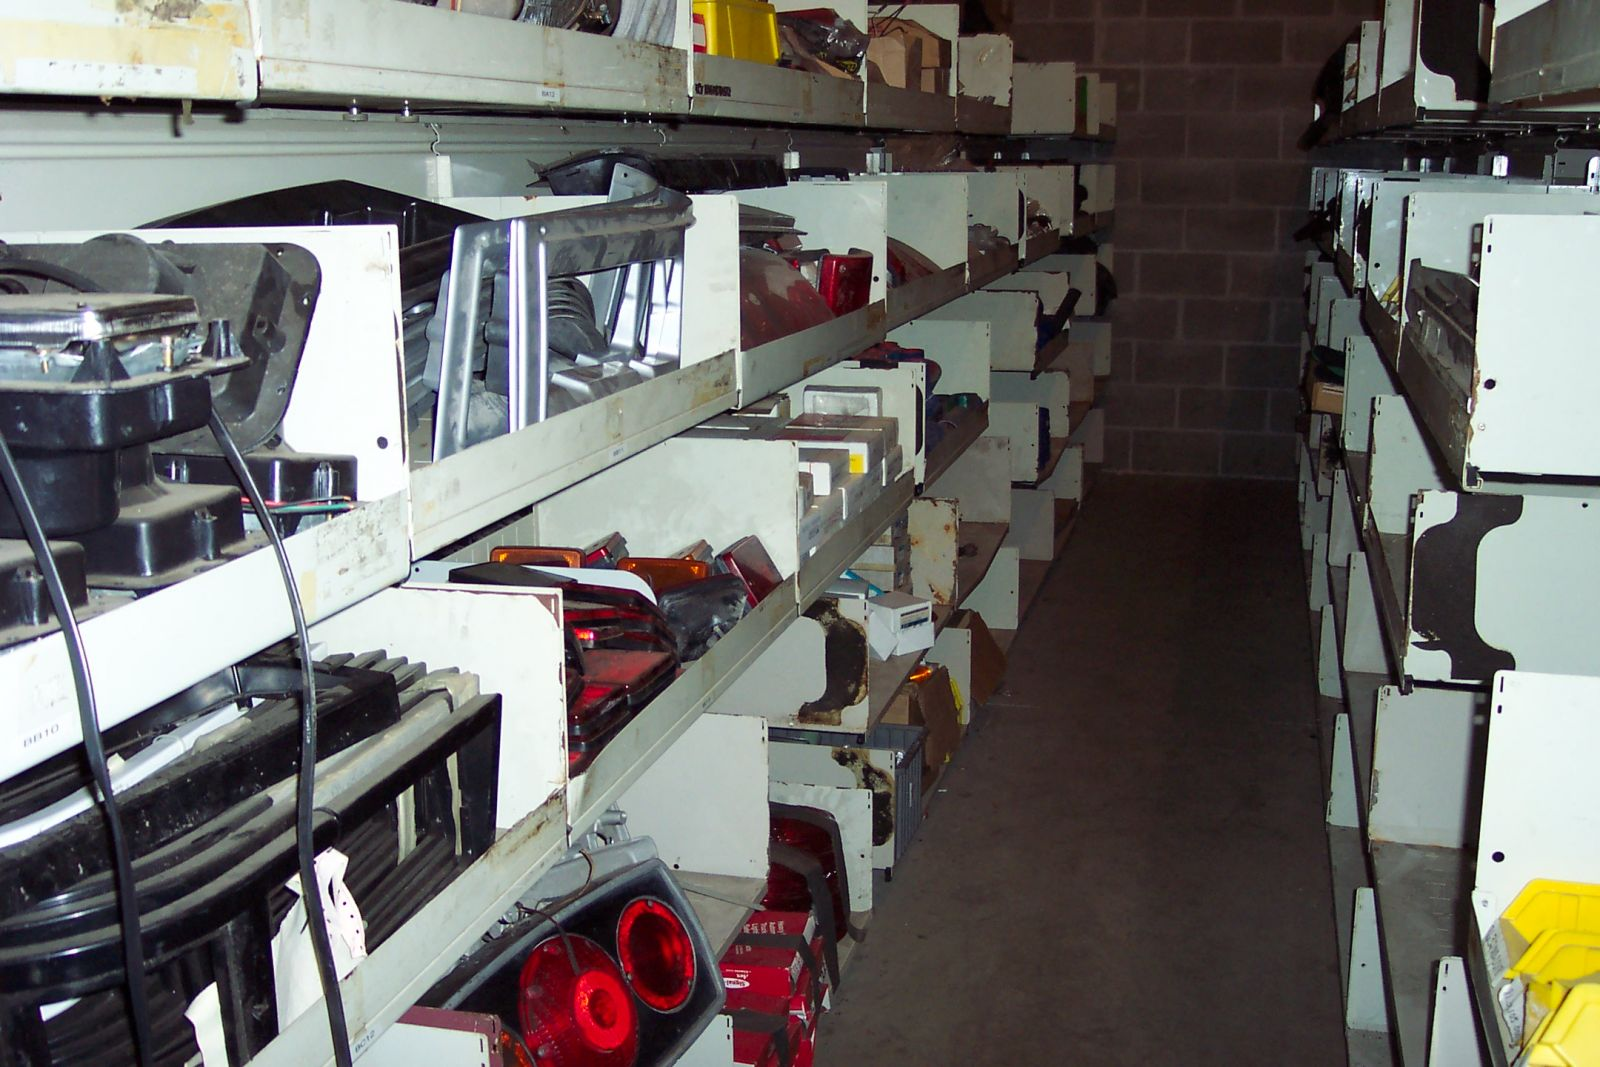 Bus Parts for sale, Rochester MN